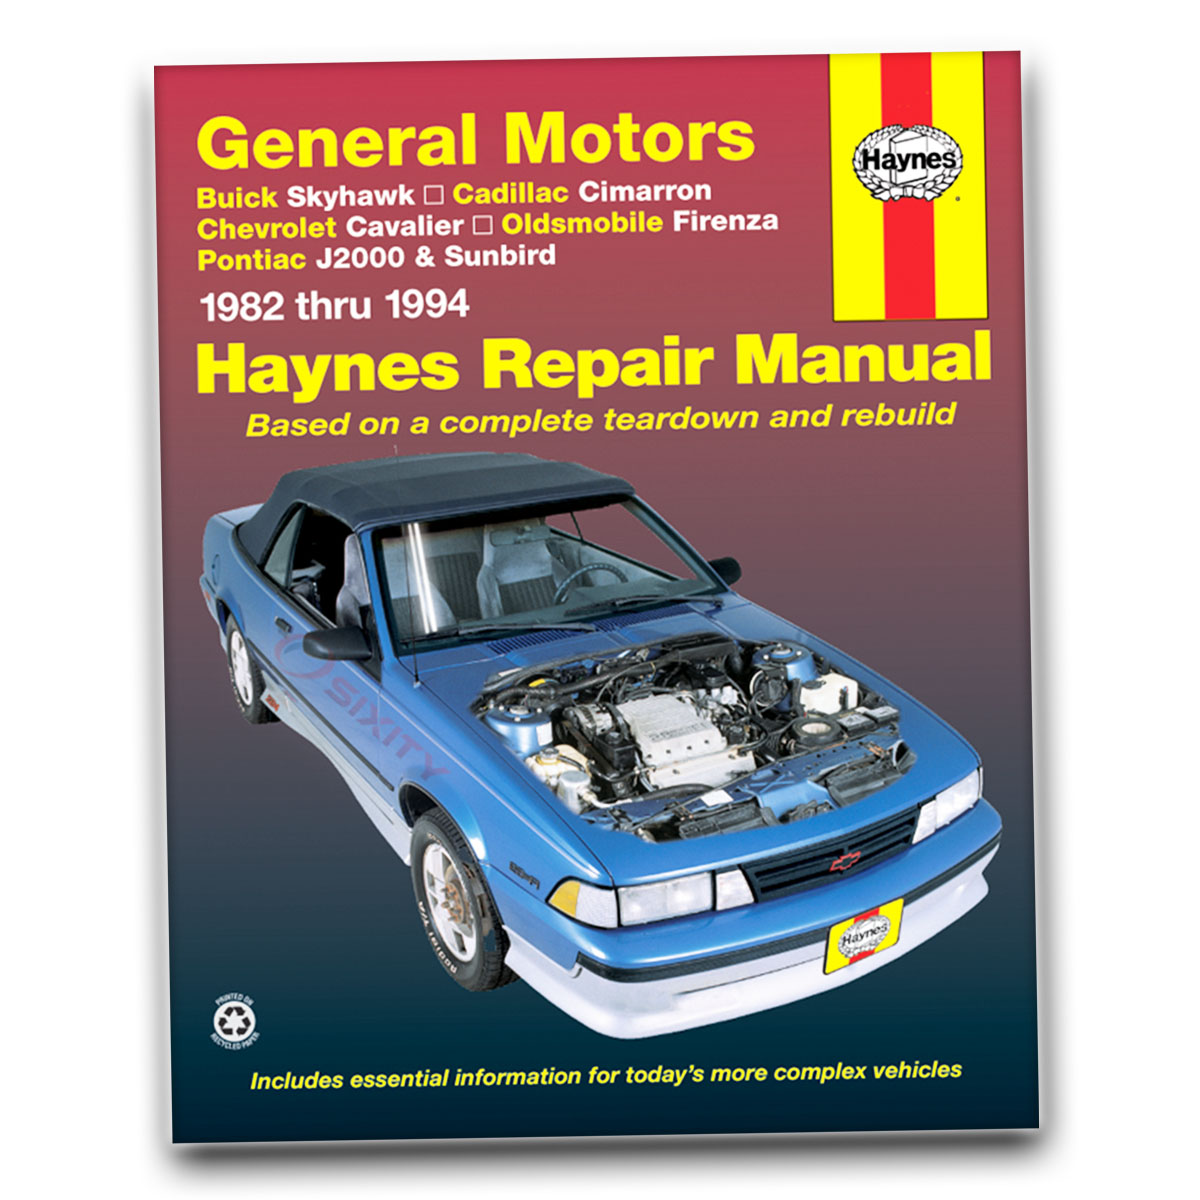 Haynes repair manual chevy cavalier & pontiac sunfire 1995 thru.